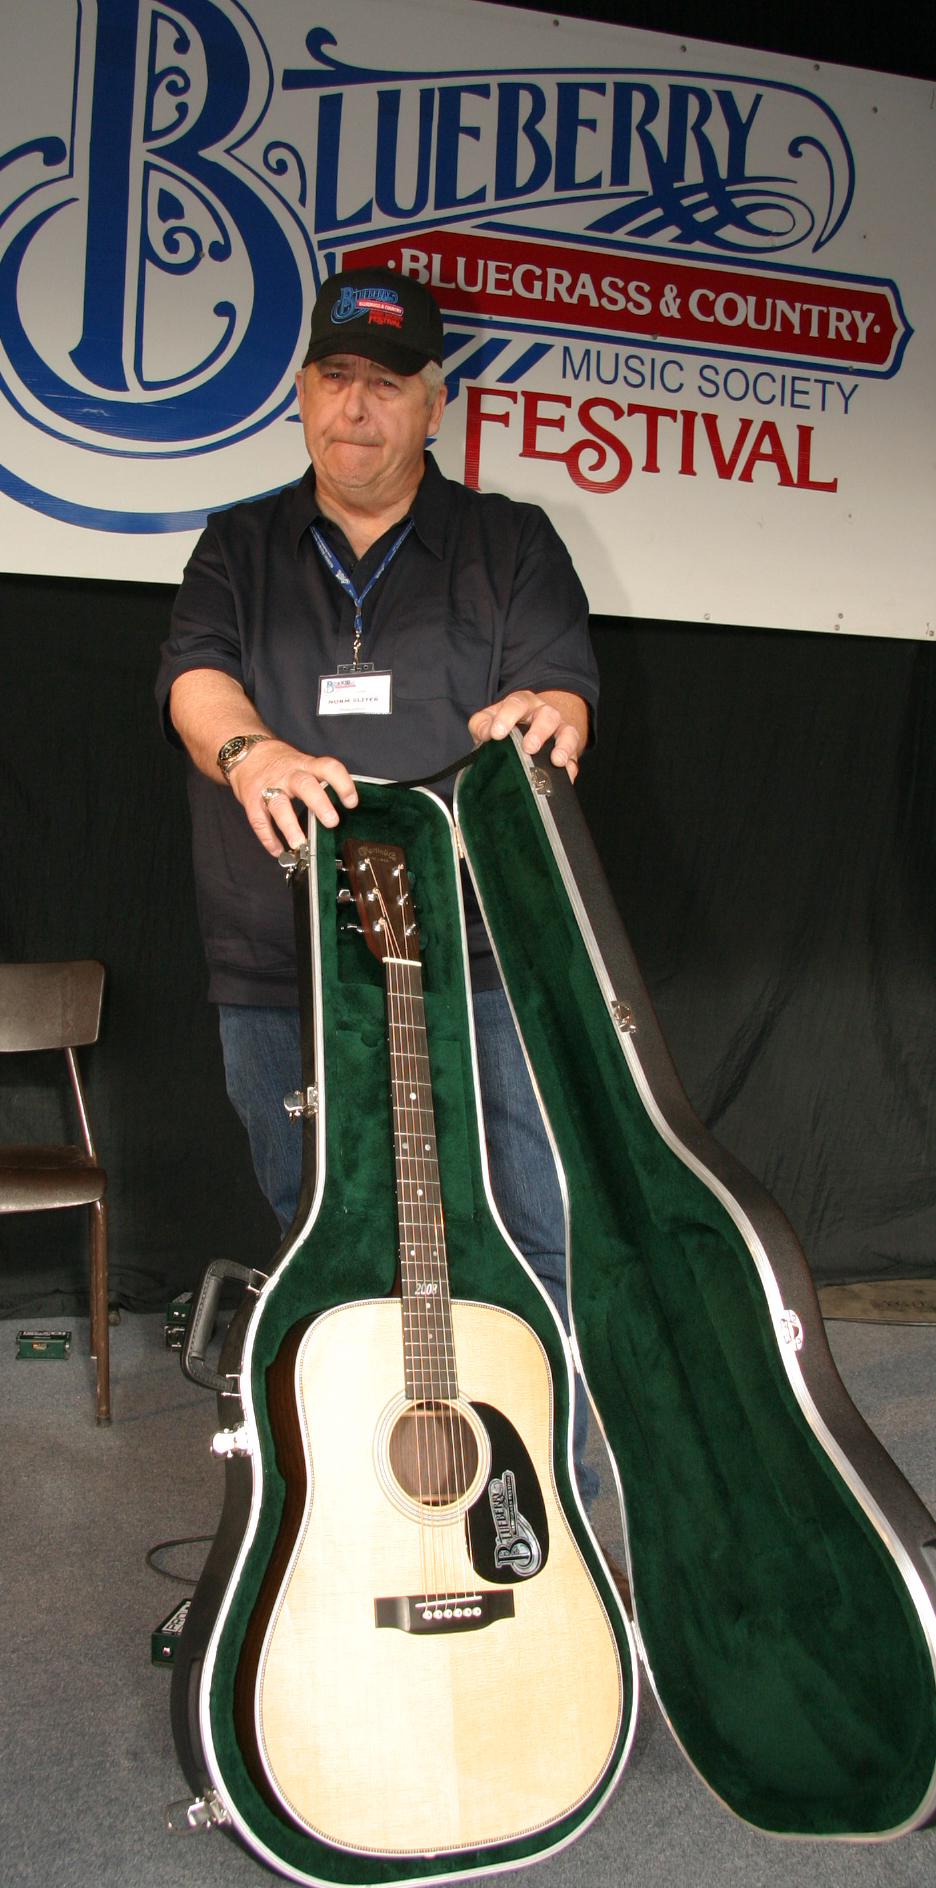 2008 - Blueberry President Norm Sliter with the custom Blueberry/Martin Guitar raffle prize